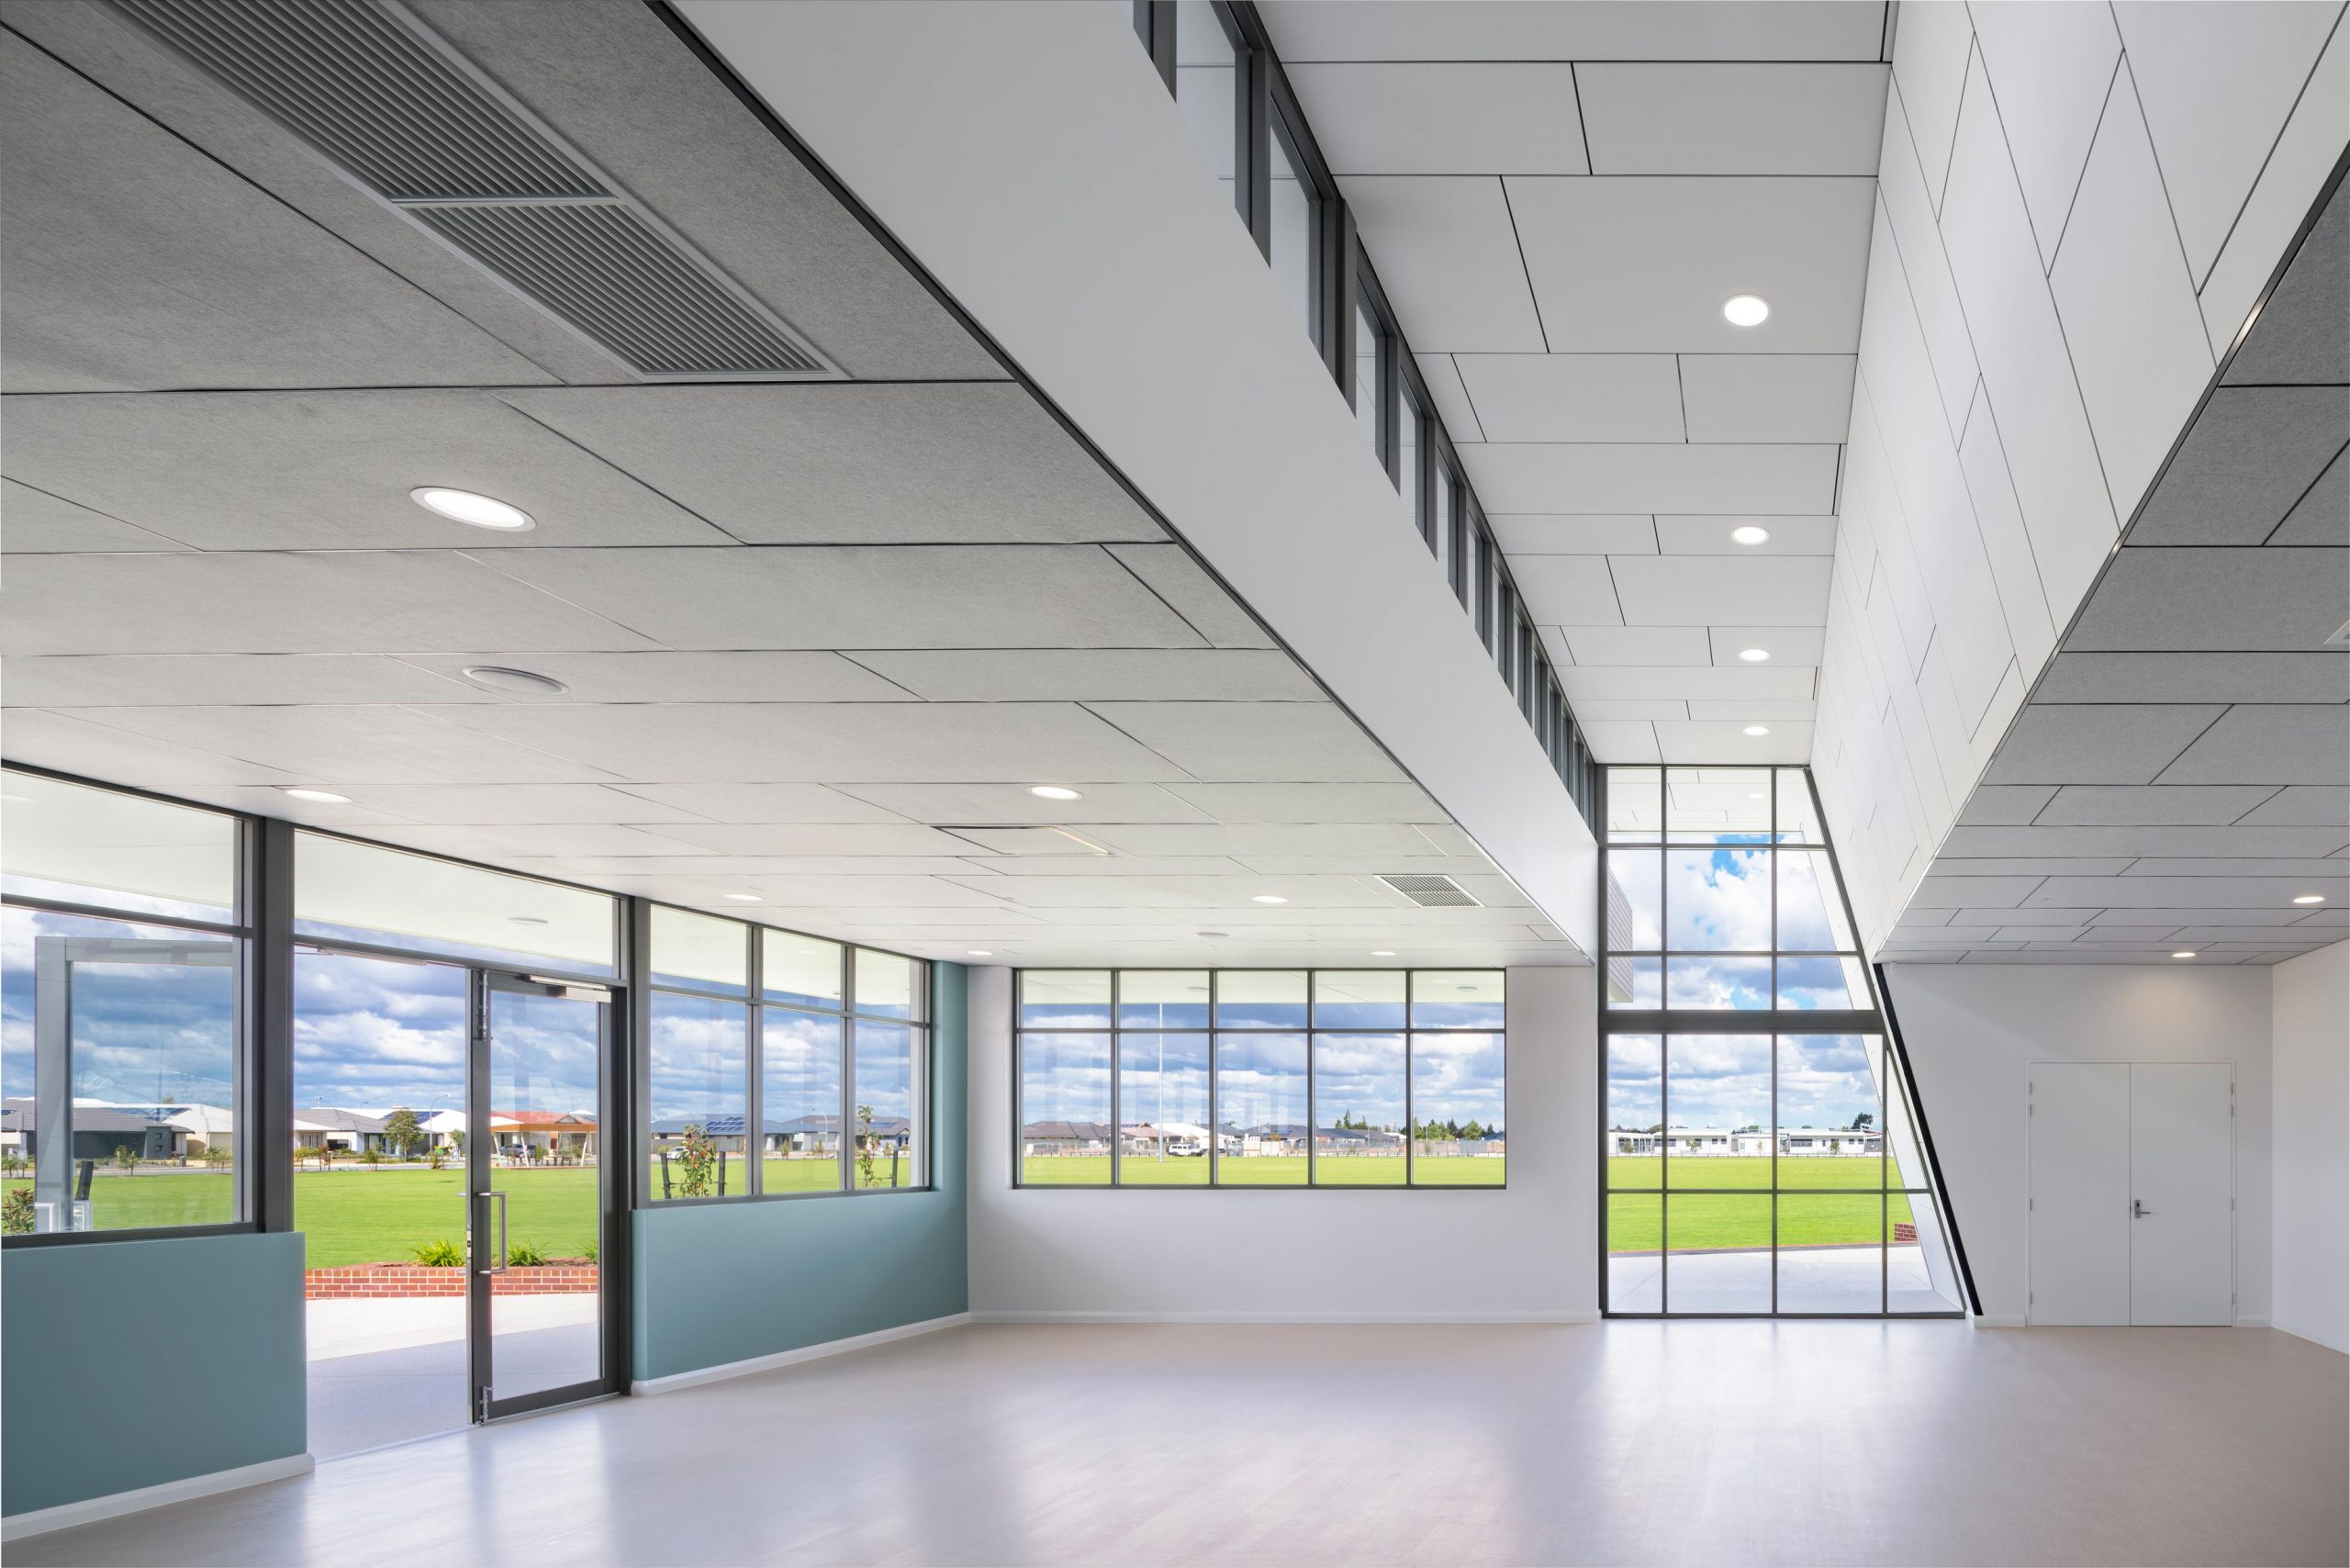 Indoor meeting or community room with skylight windows and view to playing fields at Rossiter Pavilion